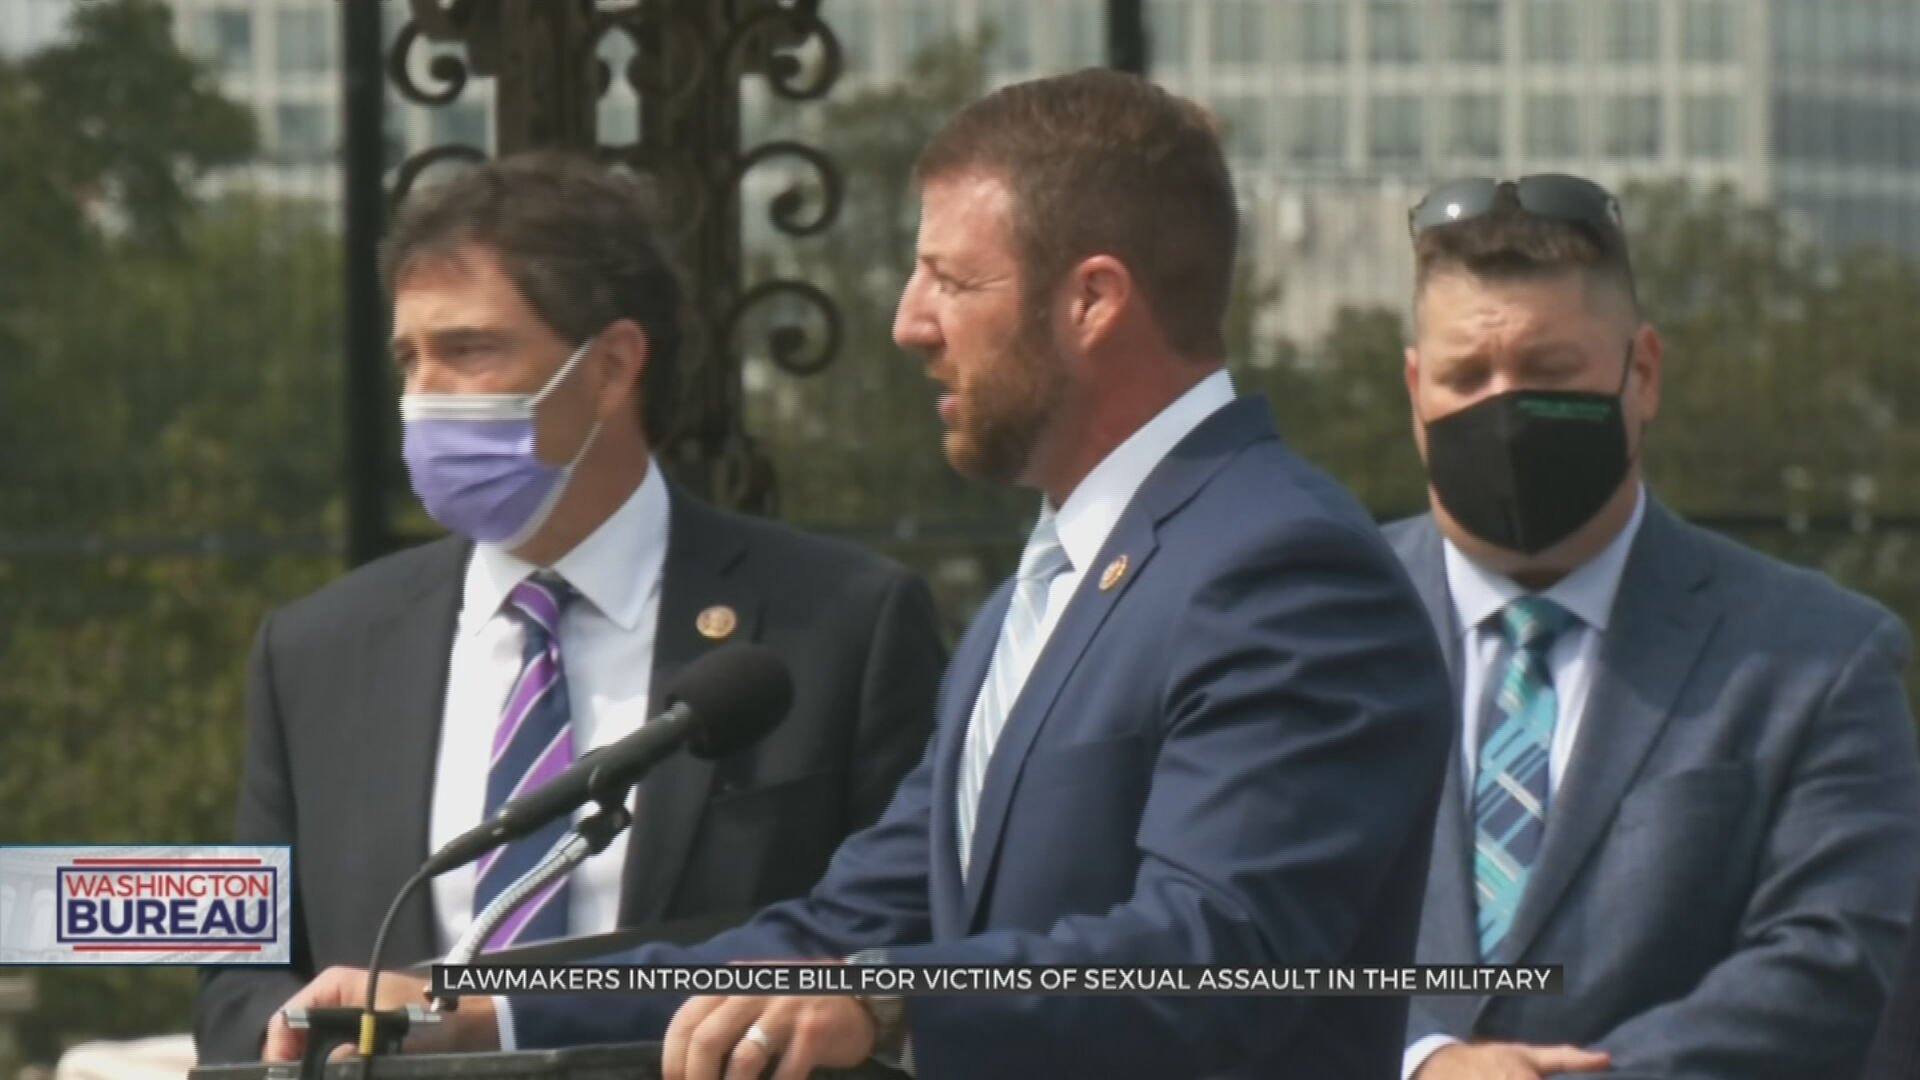 Oklahoma Lawmaker Leads Charge For Change For Sexual Assault Victims In Military